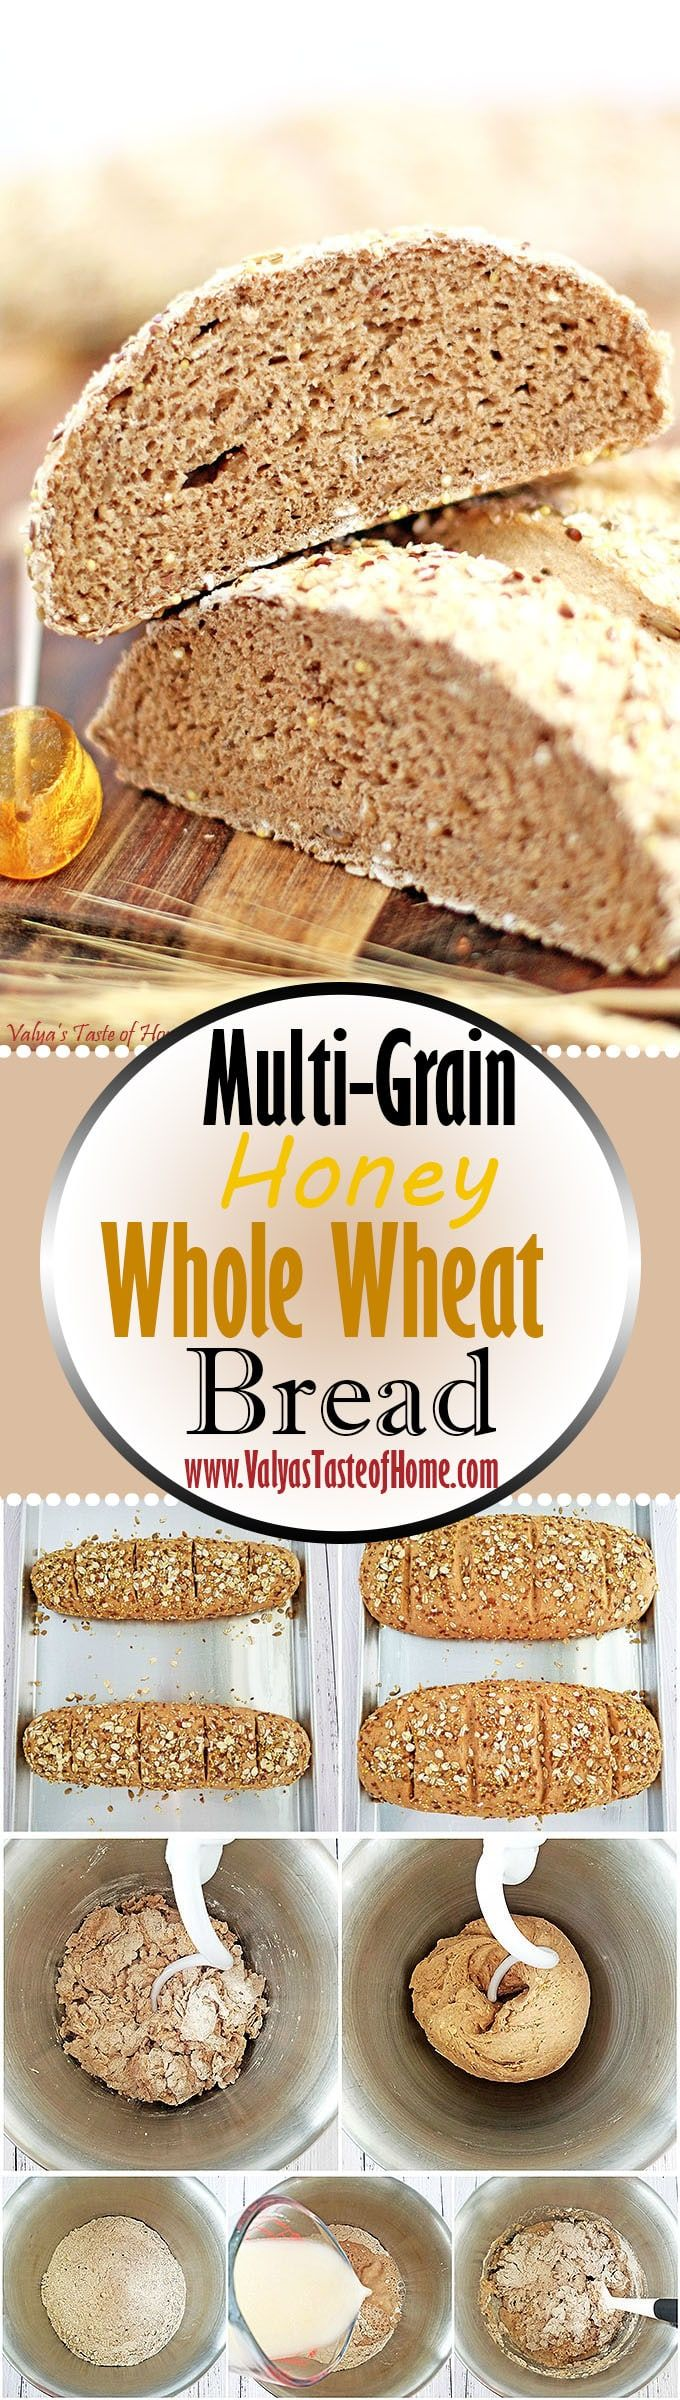 This hearty Multi-Grain Honey Whole Wheat Bread Recipe with a touch of honey is a delicious step toward getting more whole grains nutrition you need and the taste you'll love. Dense, yet soft texture, moist and super flavorful. This bread goes great with just about anything. Great for breakfast as a toast topped with egg, bacon, and avocado. Or simply spread a little butter, drizzle some honey and a cup of coffee. www.valyastasteofhome.com